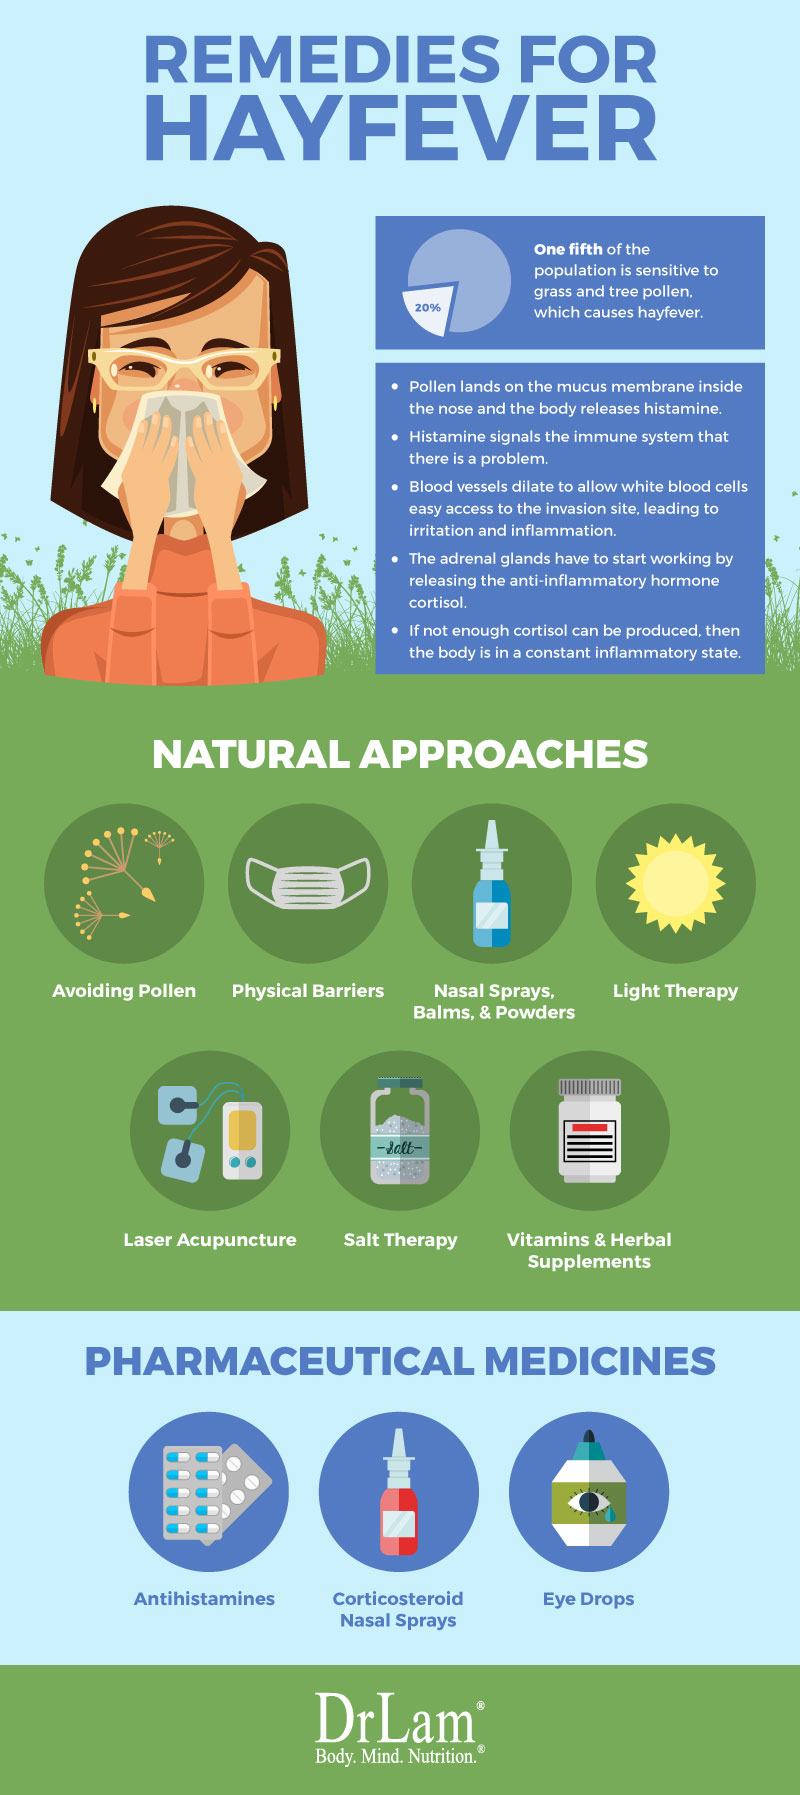 Check out this easy to understand infographic about the remedies for hayfever